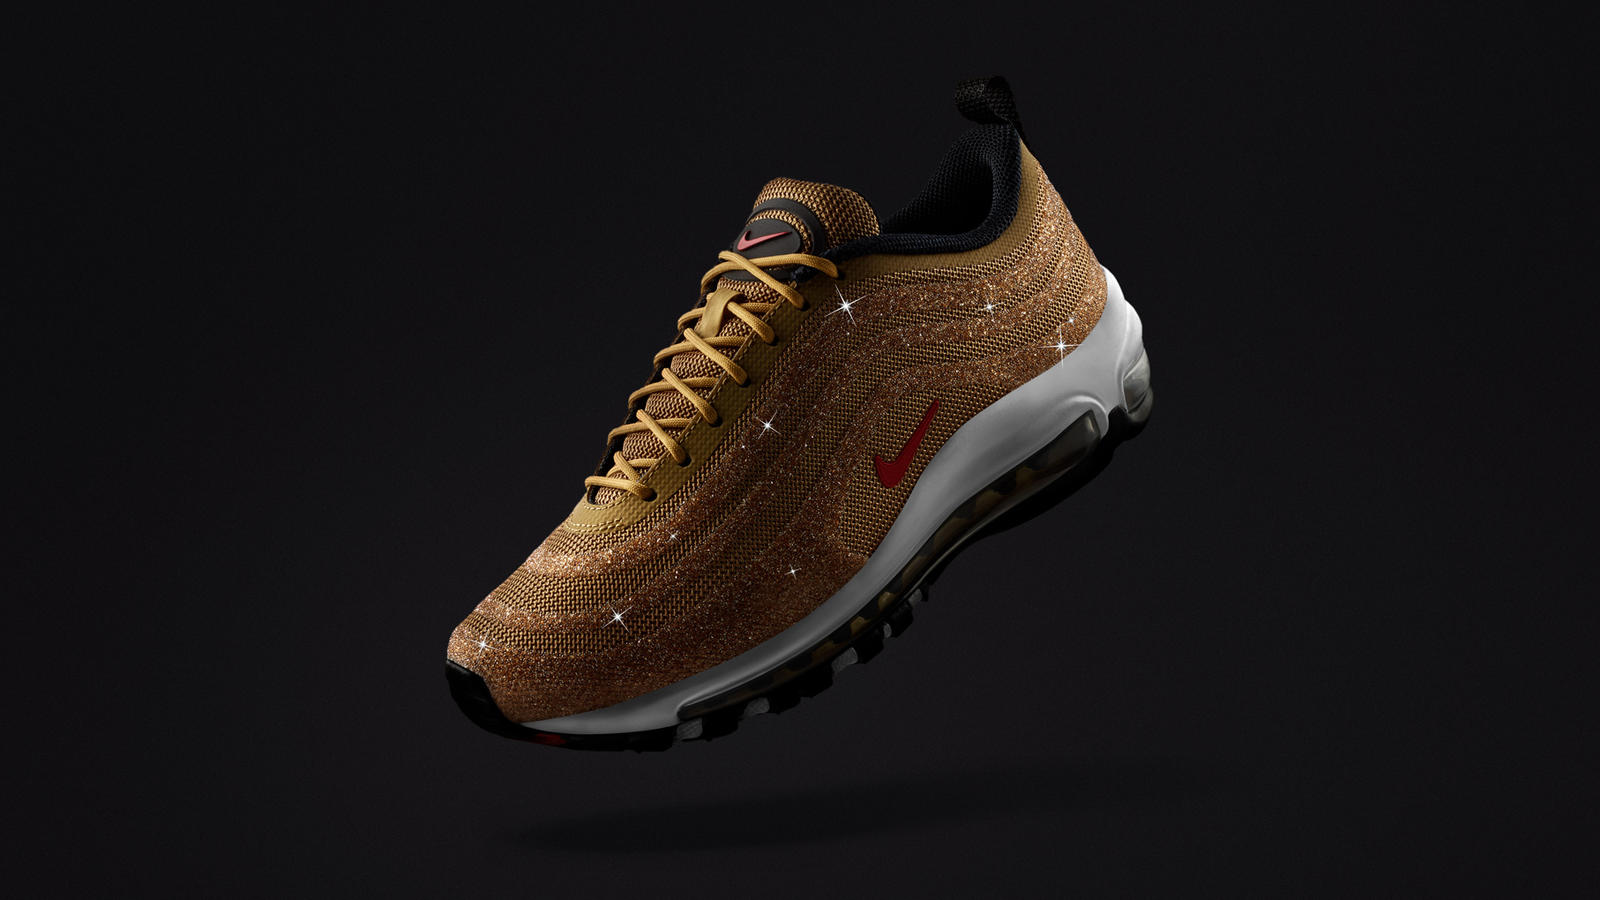 Nike Air Max 97 Gold Swarovski® Crystal - Nike News 09143cc56